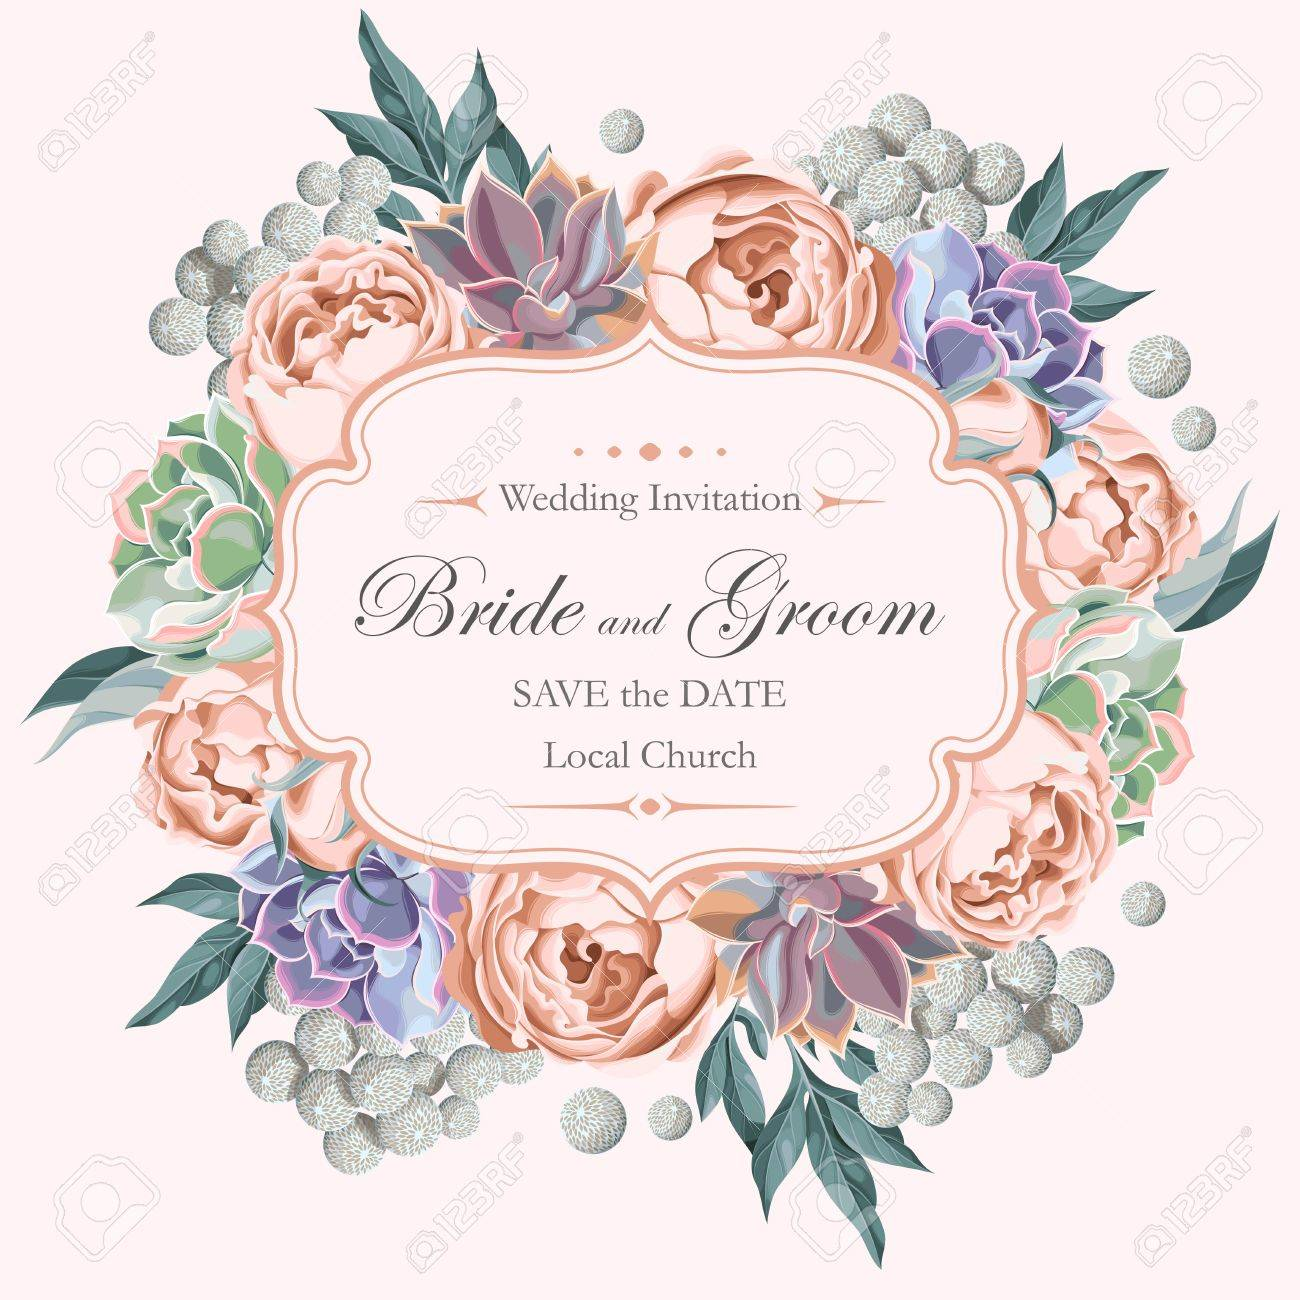 Vector vintage wedding invitation with peony roses and varicolored succulents - 57640367